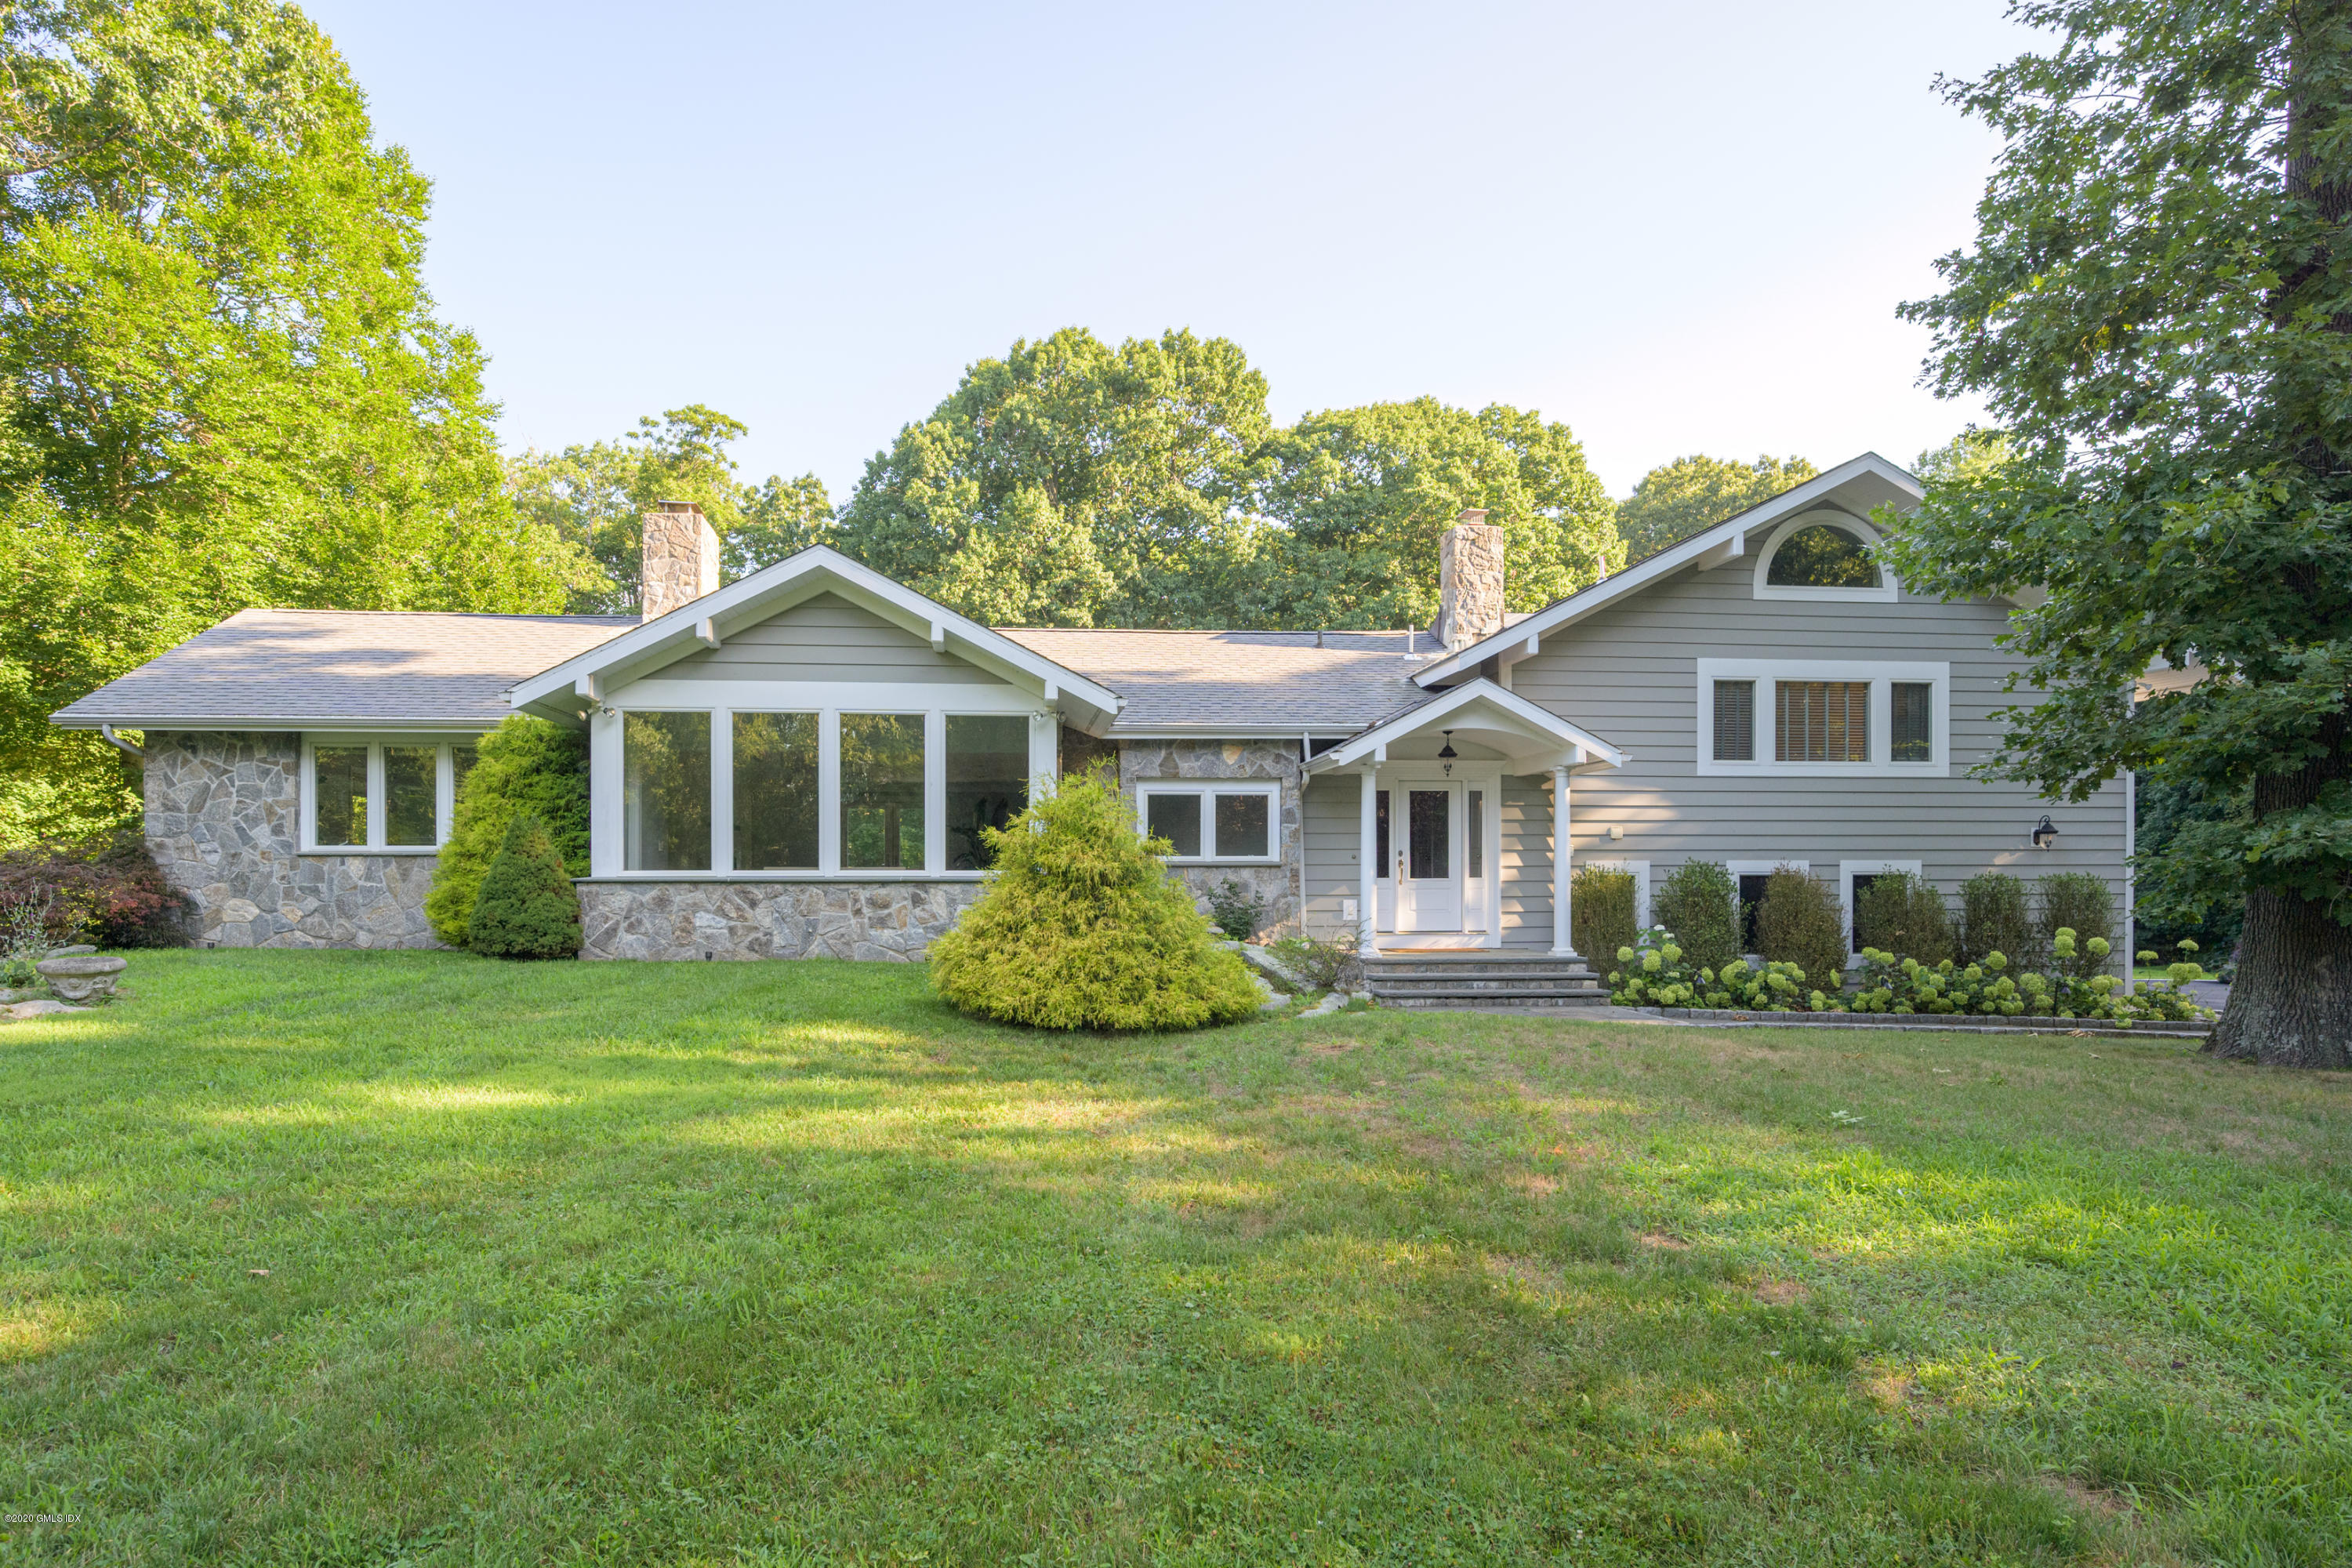 35 Dartmouth Road, Cos Cob, Connecticut 06807, 4 Bedrooms Bedrooms, ,4 BathroomsBathrooms,Single family,For sale,Dartmouth,110701